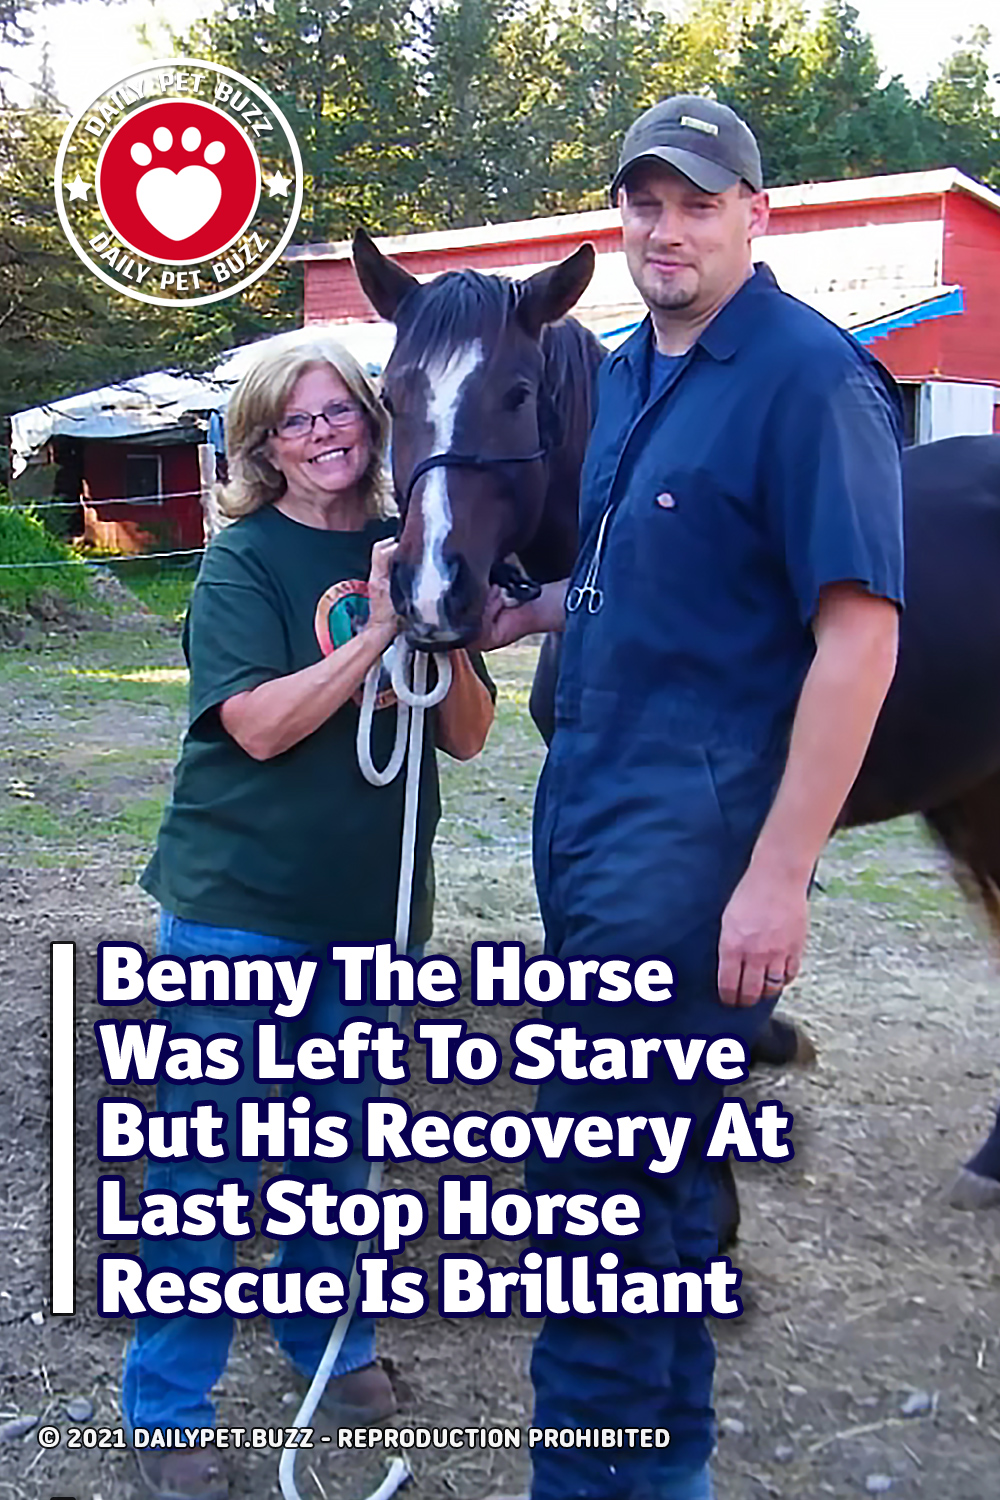 Benny The Horse Was Left To Starve But His Recovery At Last Stop Horse Rescue Is Brilliant